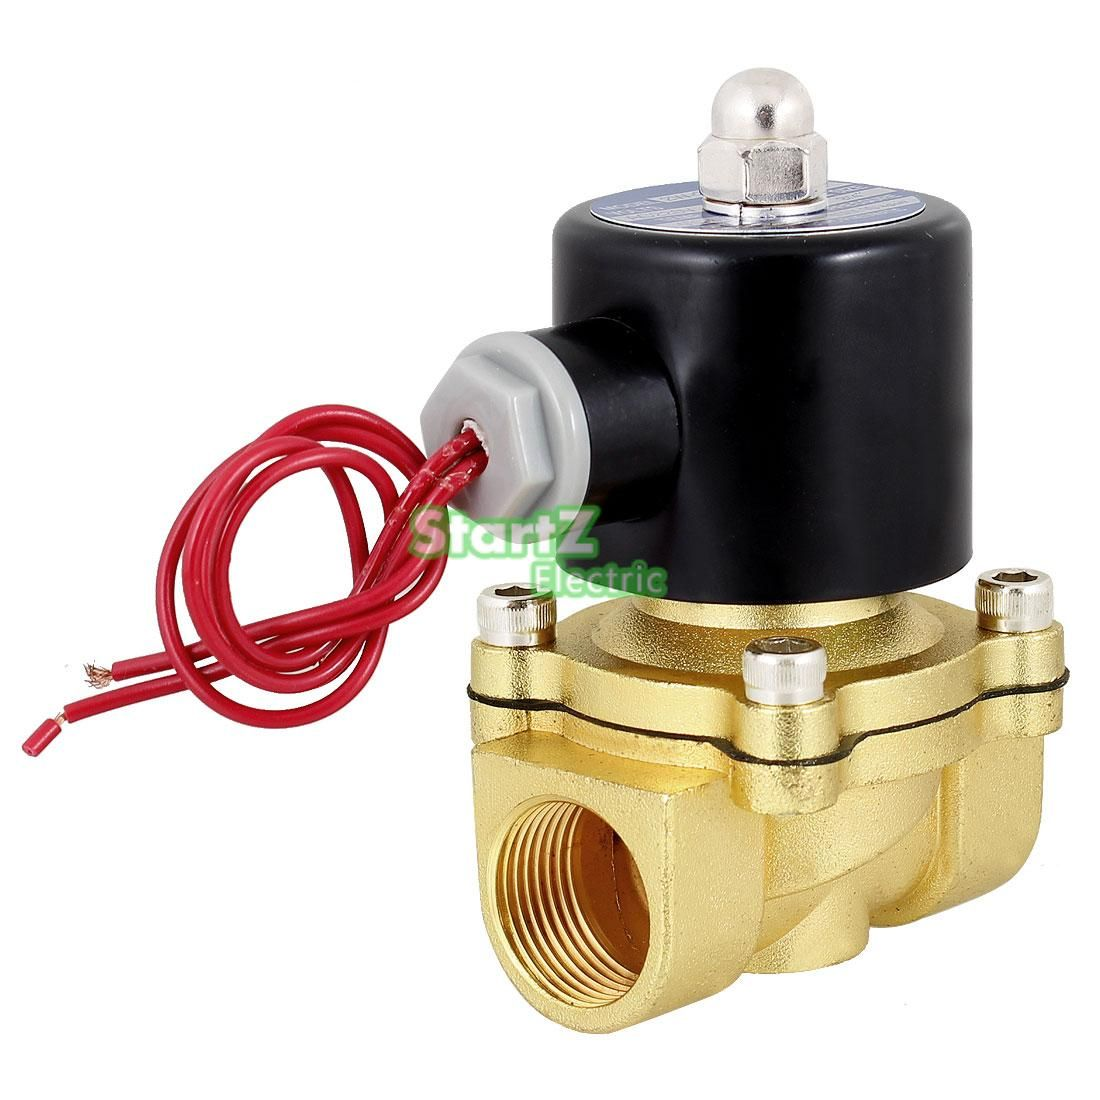 "1/2"" Inch Electric Air Gas Water Solenoid Valve Normally Closed DC12V DC24V AC110V AC220V"